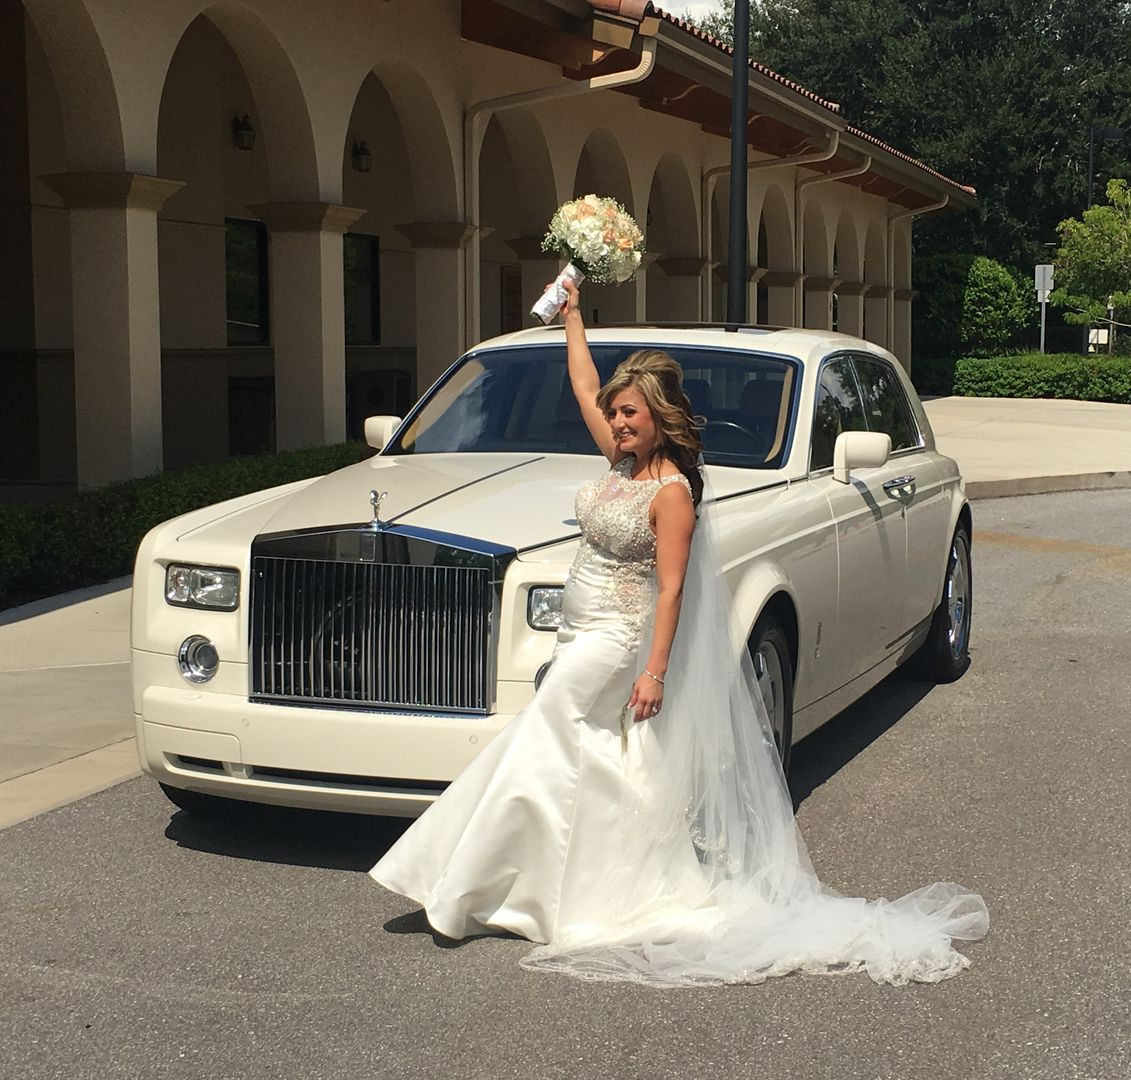 Rent Our White Rolls Royce Phantom For Your Wedding Call Today To Make A Rolls Royce Luxury Car Hire White Rolls Royce